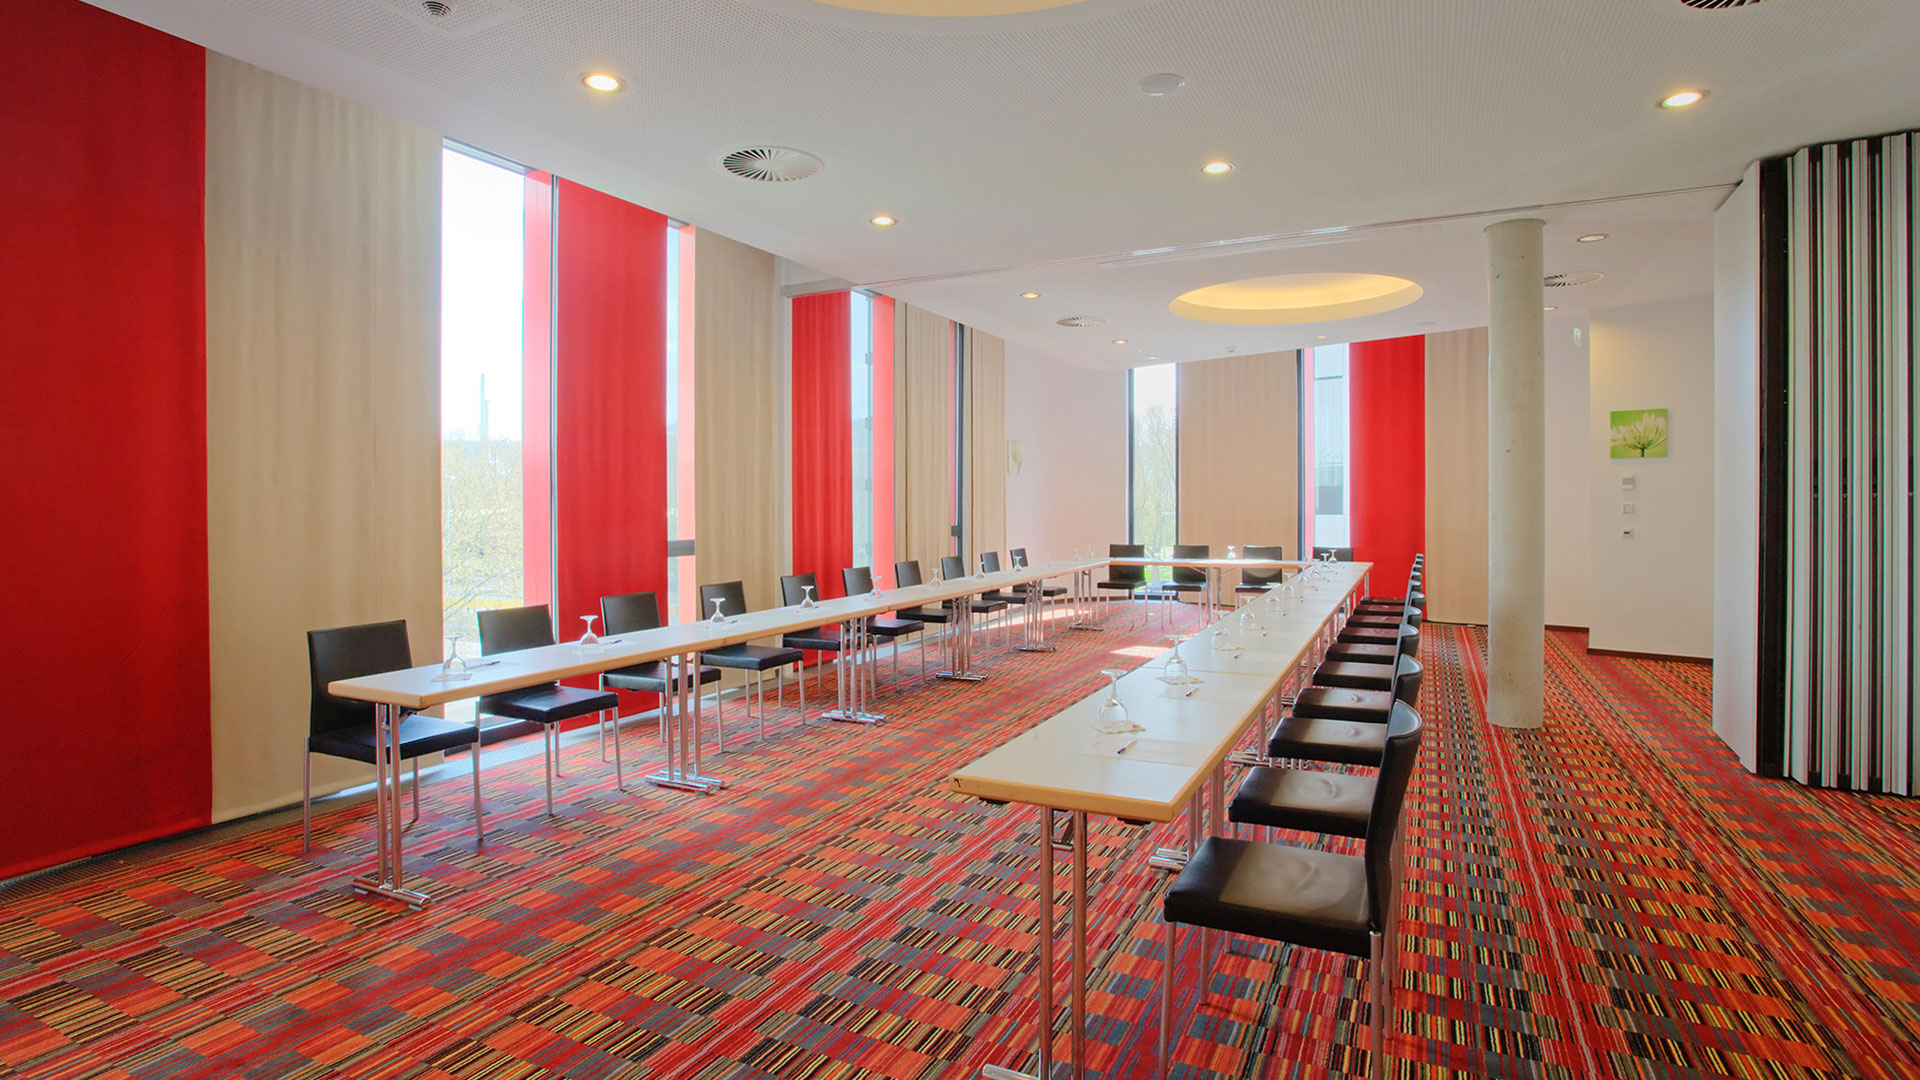 Photo of a conference room - 03 - Hilton Garden Inn Stuttgart NeckarPark